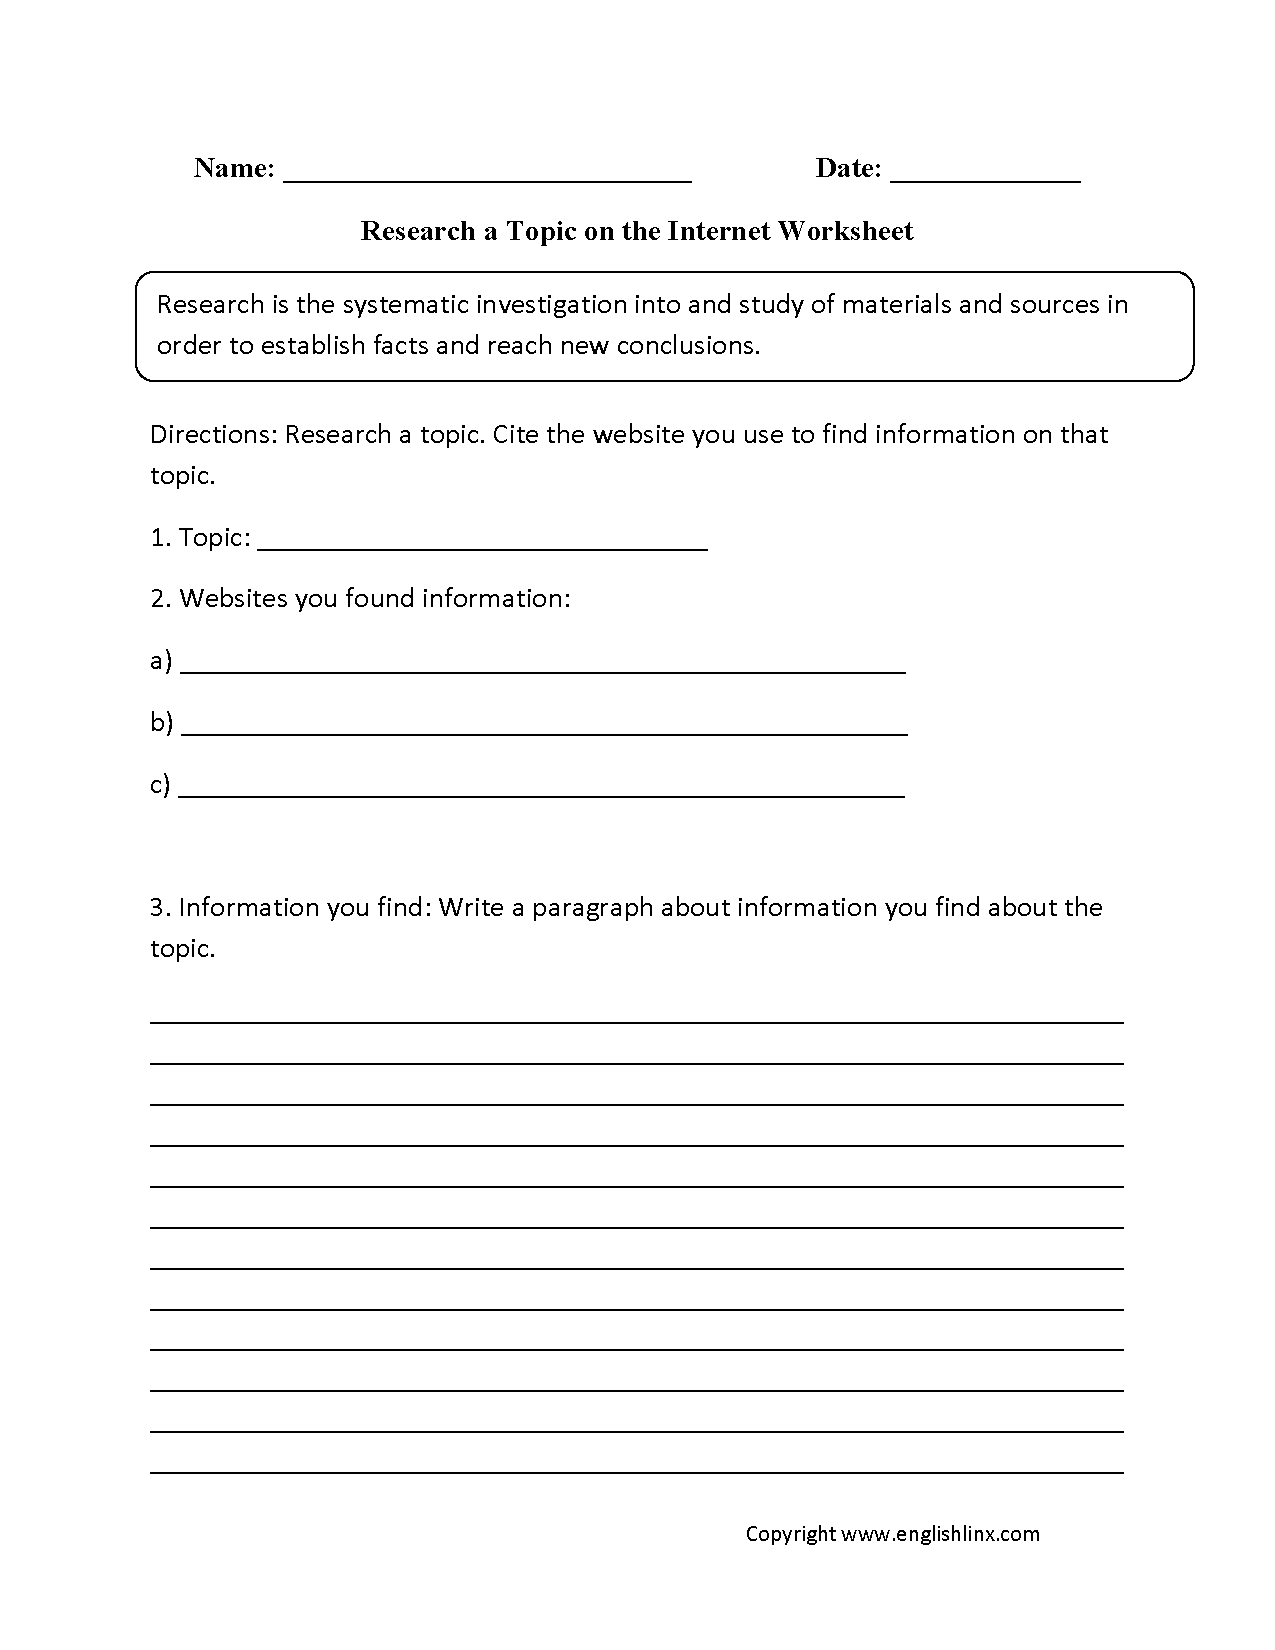 Aldiablosus  Personable Englishlinxcom  Research Worksheets With Glamorous On The Internet Worksheet With Astonishing Touch Math Multiplication Worksheets Also Smart Teacher Worksheets In Addition Th Grade Algebraic Expressions Worksheets And Phases Of The Moon Printable Worksheets As Well As  Digit By  Digit Multiplication Worksheet Additionally Acids And Bases Worksheets From Englishlinxcom With Aldiablosus  Glamorous Englishlinxcom  Research Worksheets With Astonishing On The Internet Worksheet And Personable Touch Math Multiplication Worksheets Also Smart Teacher Worksheets In Addition Th Grade Algebraic Expressions Worksheets From Englishlinxcom